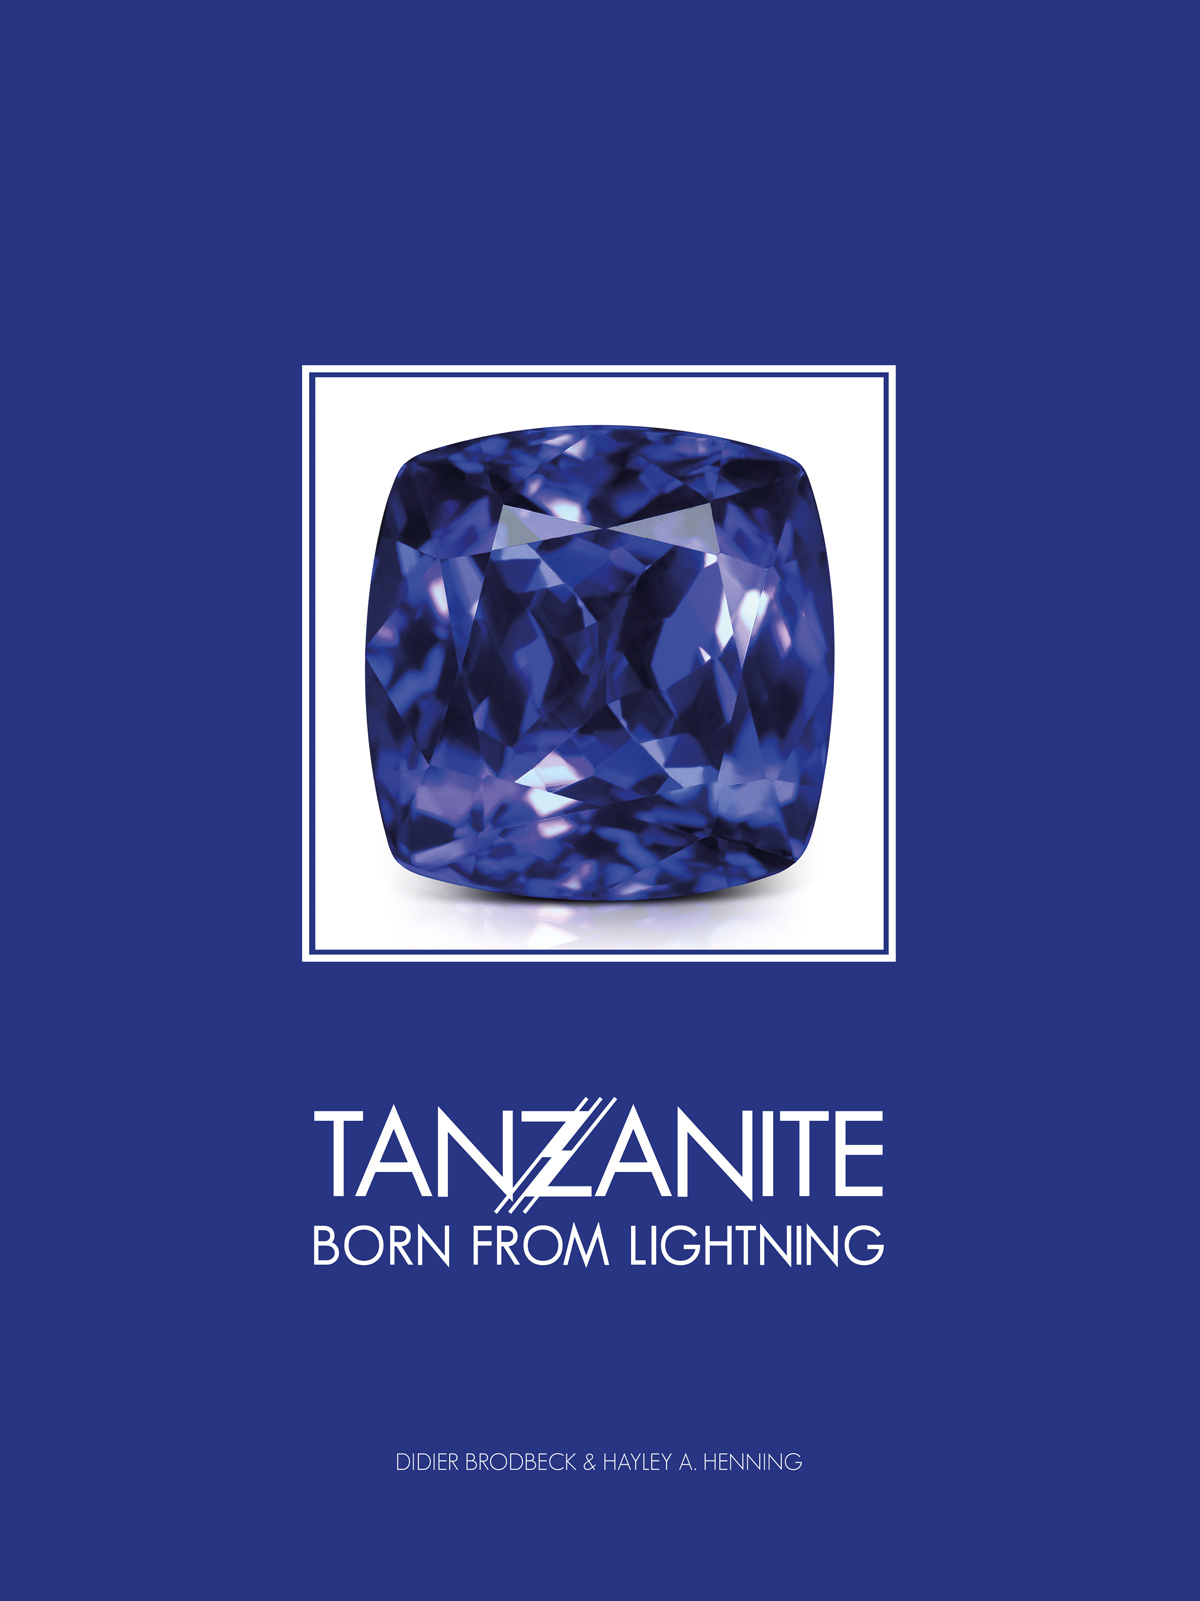 Tanzanite: Born from Lightning book by Didier Brodbeck and Hayley Henning